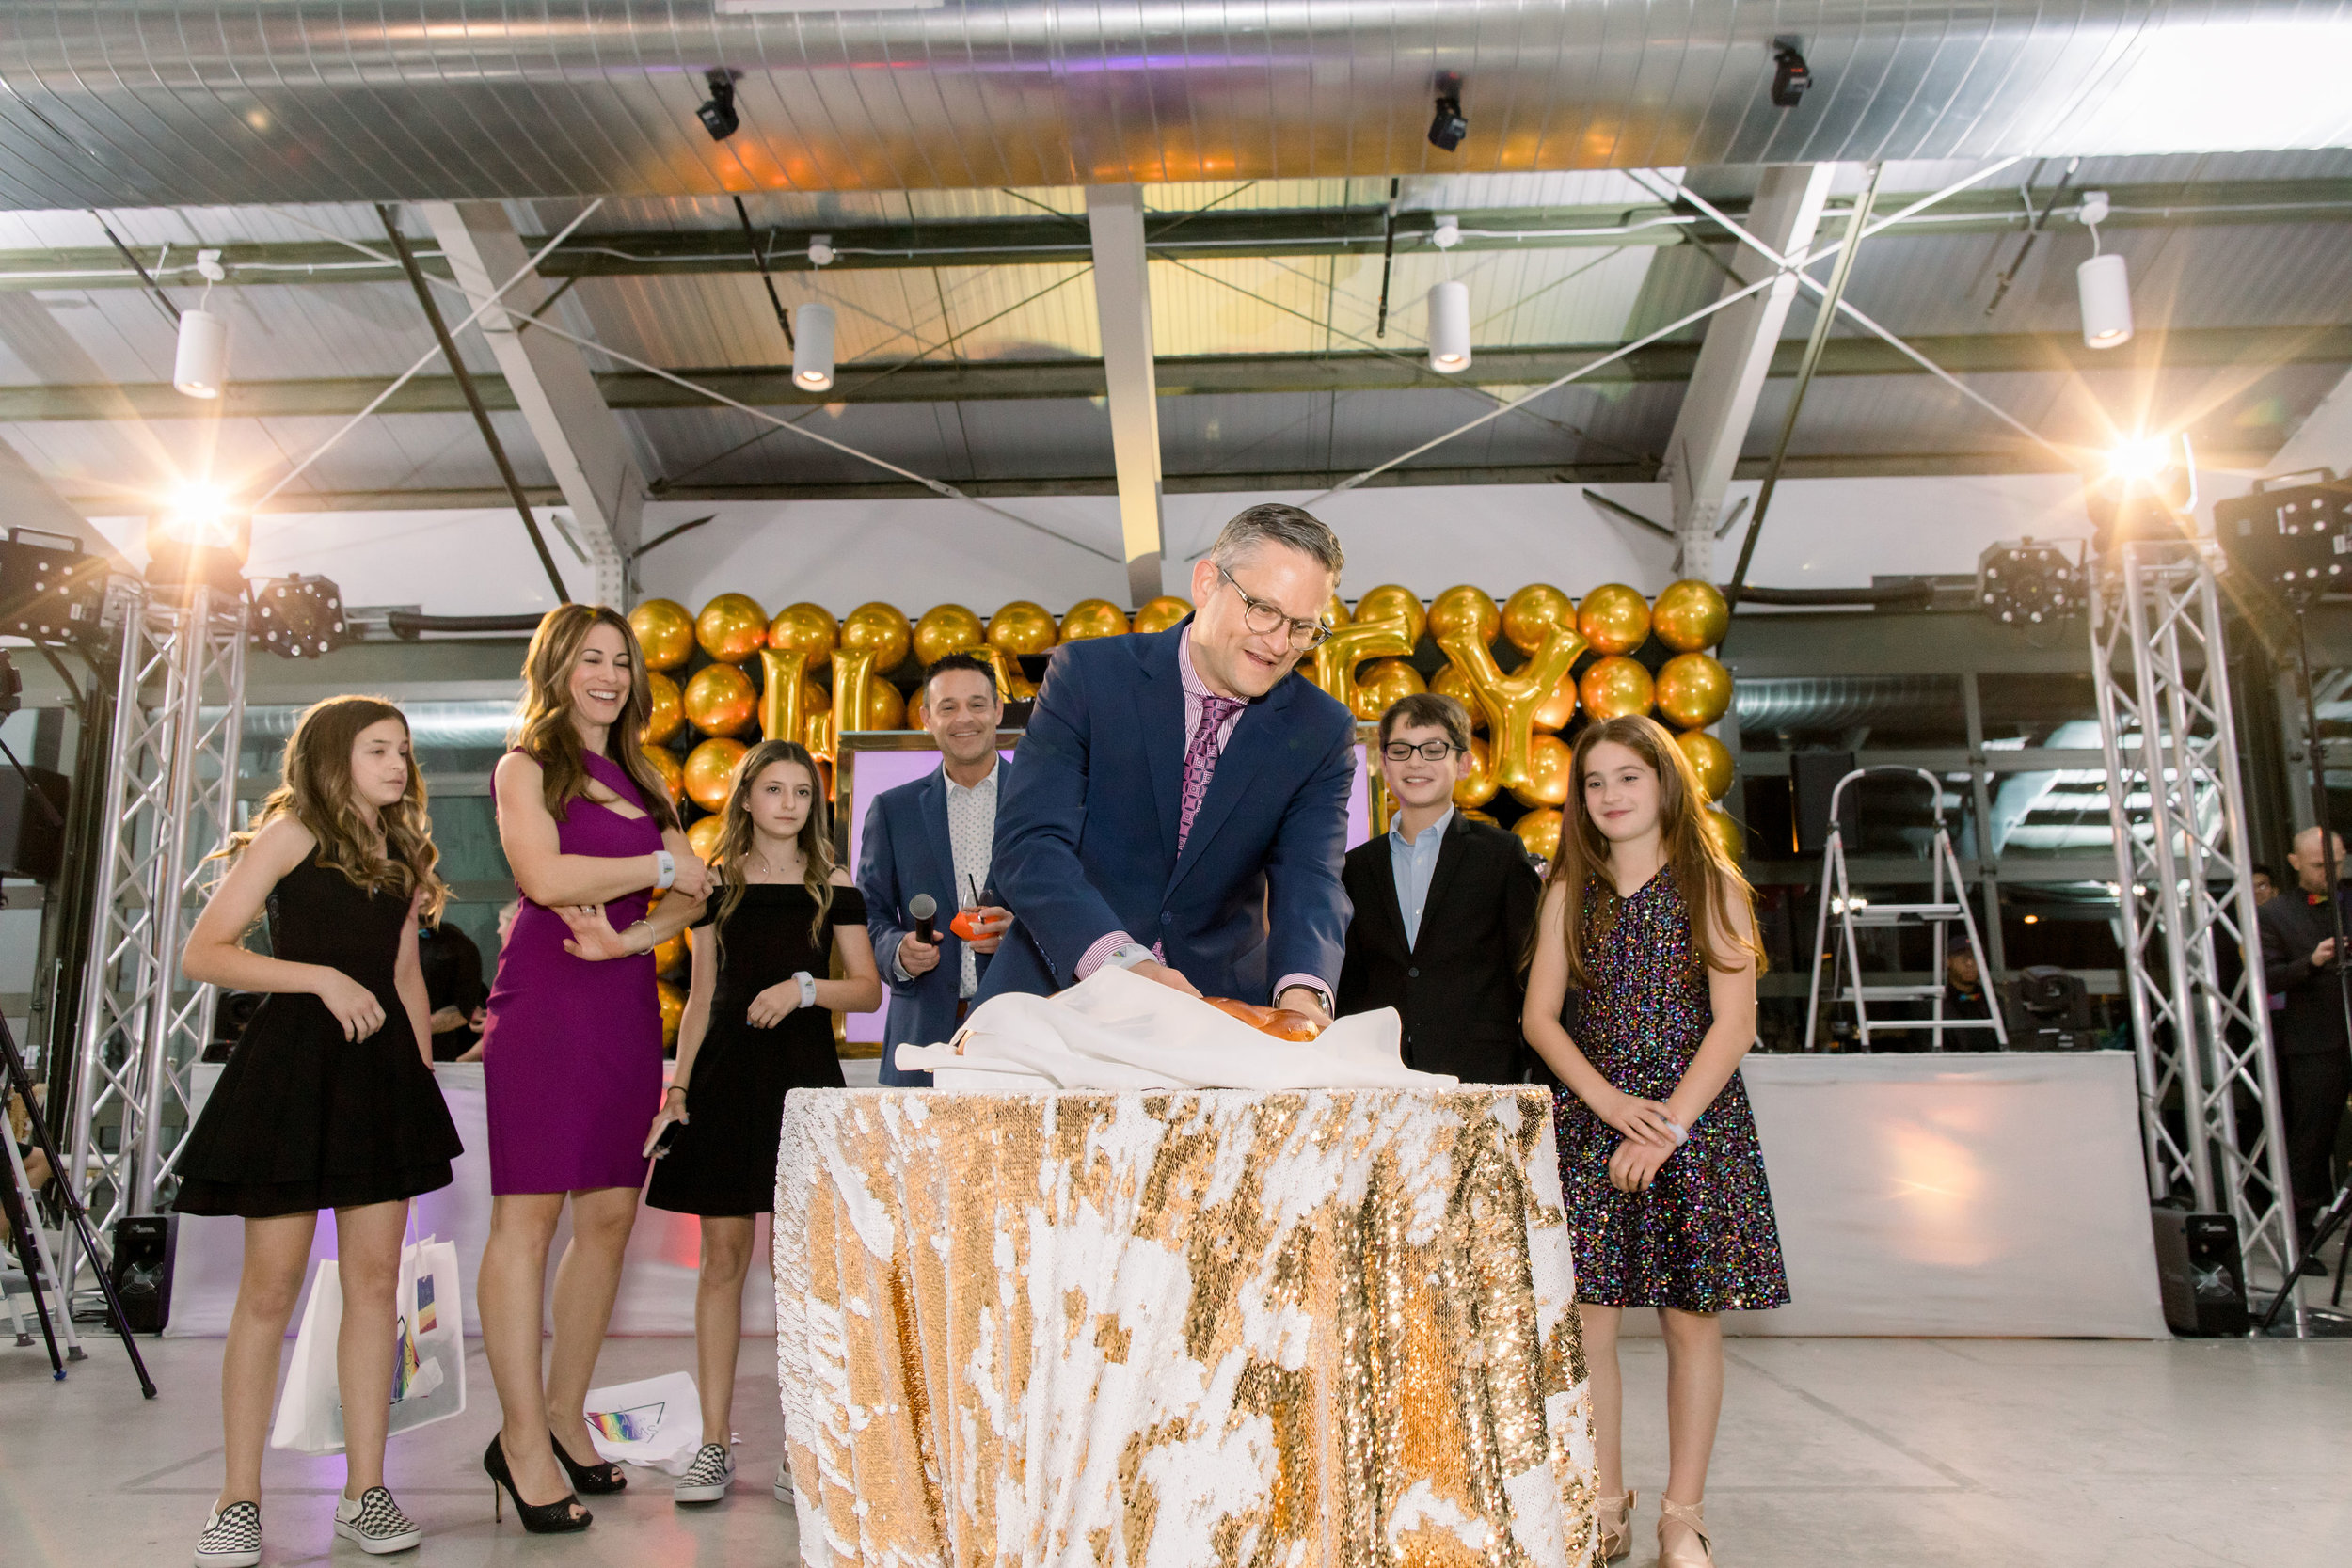 36 rainbow bat mitzvah blessing challah bread blessing jewish tradition gold mermaid sequin table linen gold balloon wall backdrop Life Design Events photos by Stephanie Heymann Photography.jpg